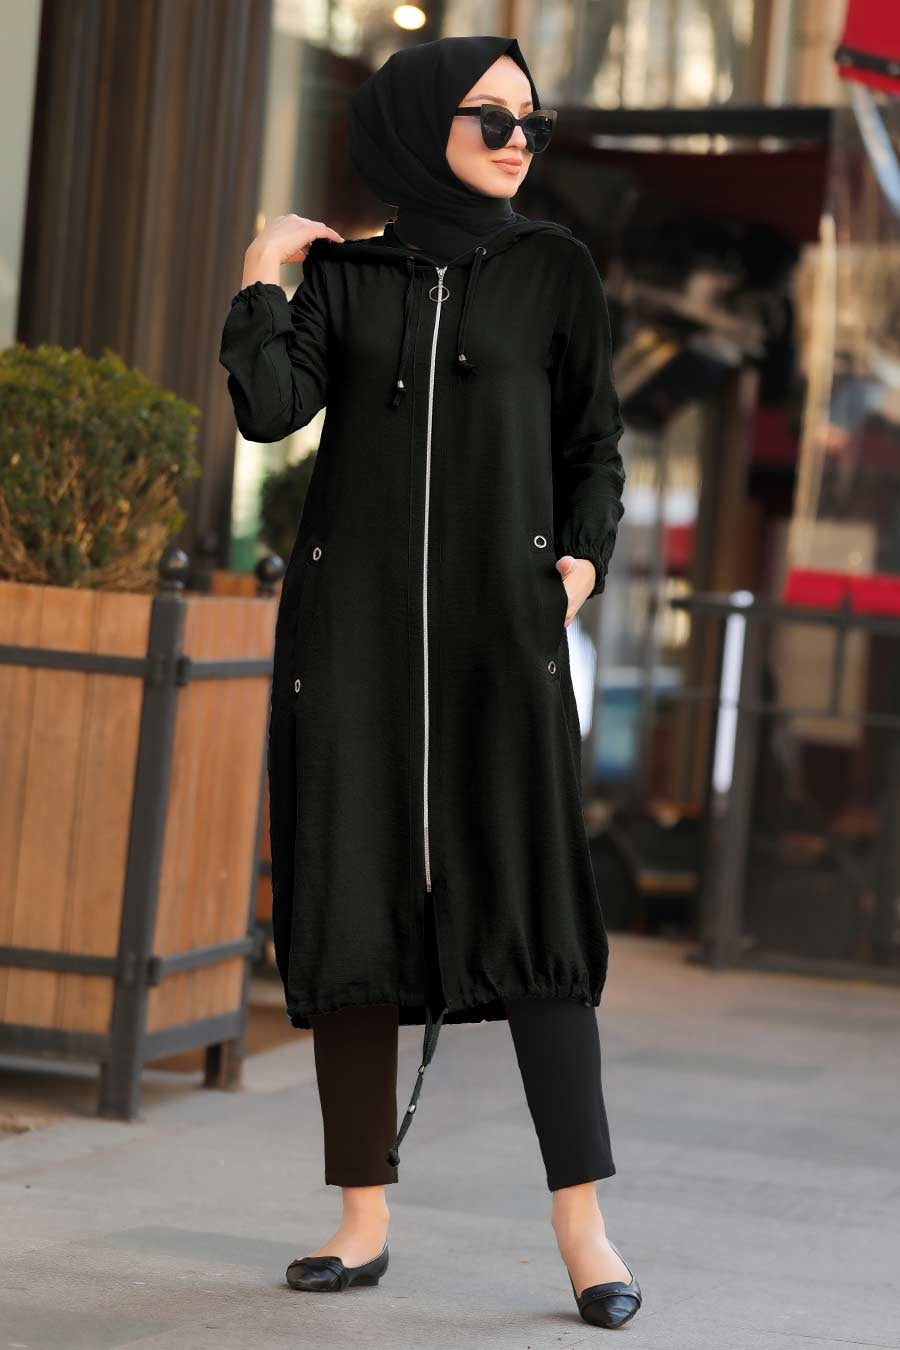 Women's Zipped Black Modest Jacket